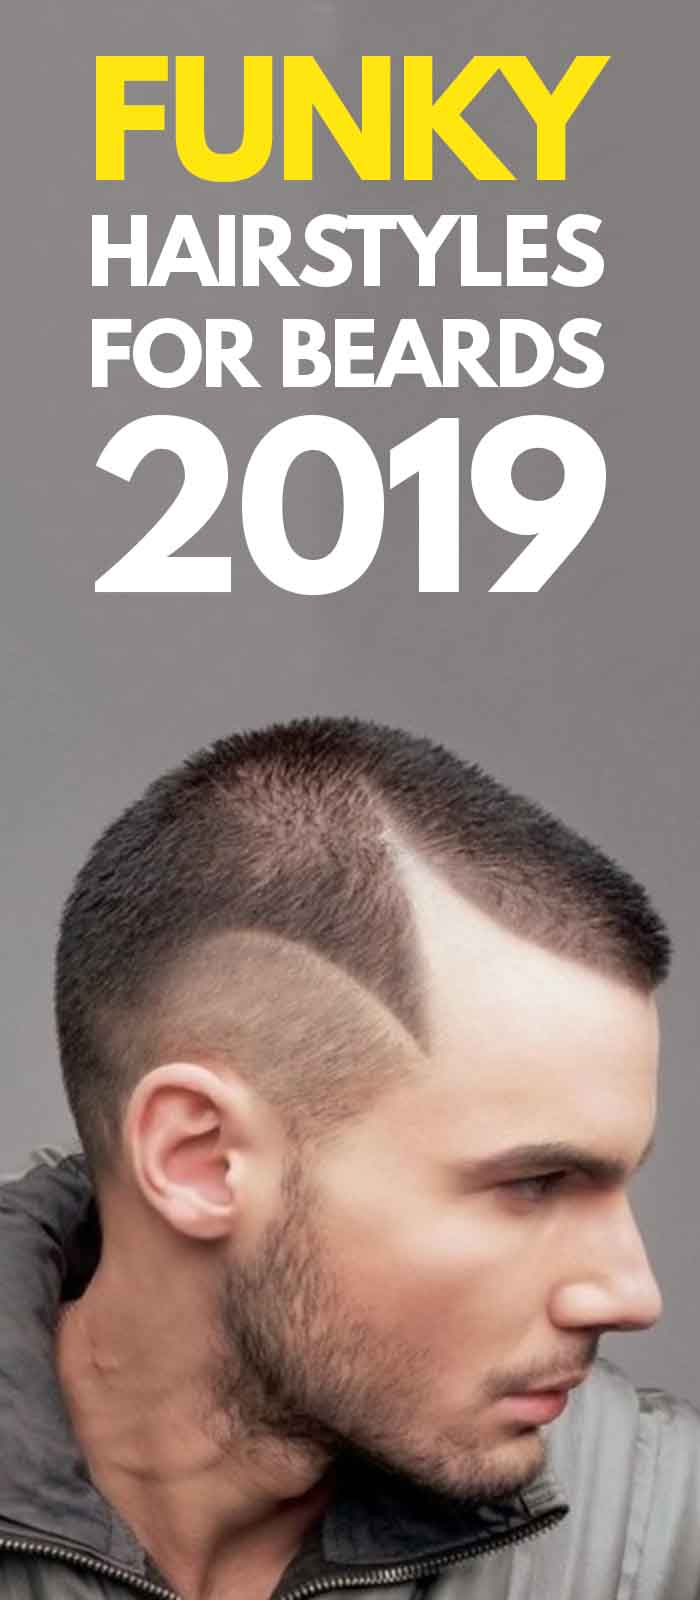 Funky Haircut For men with Beard!